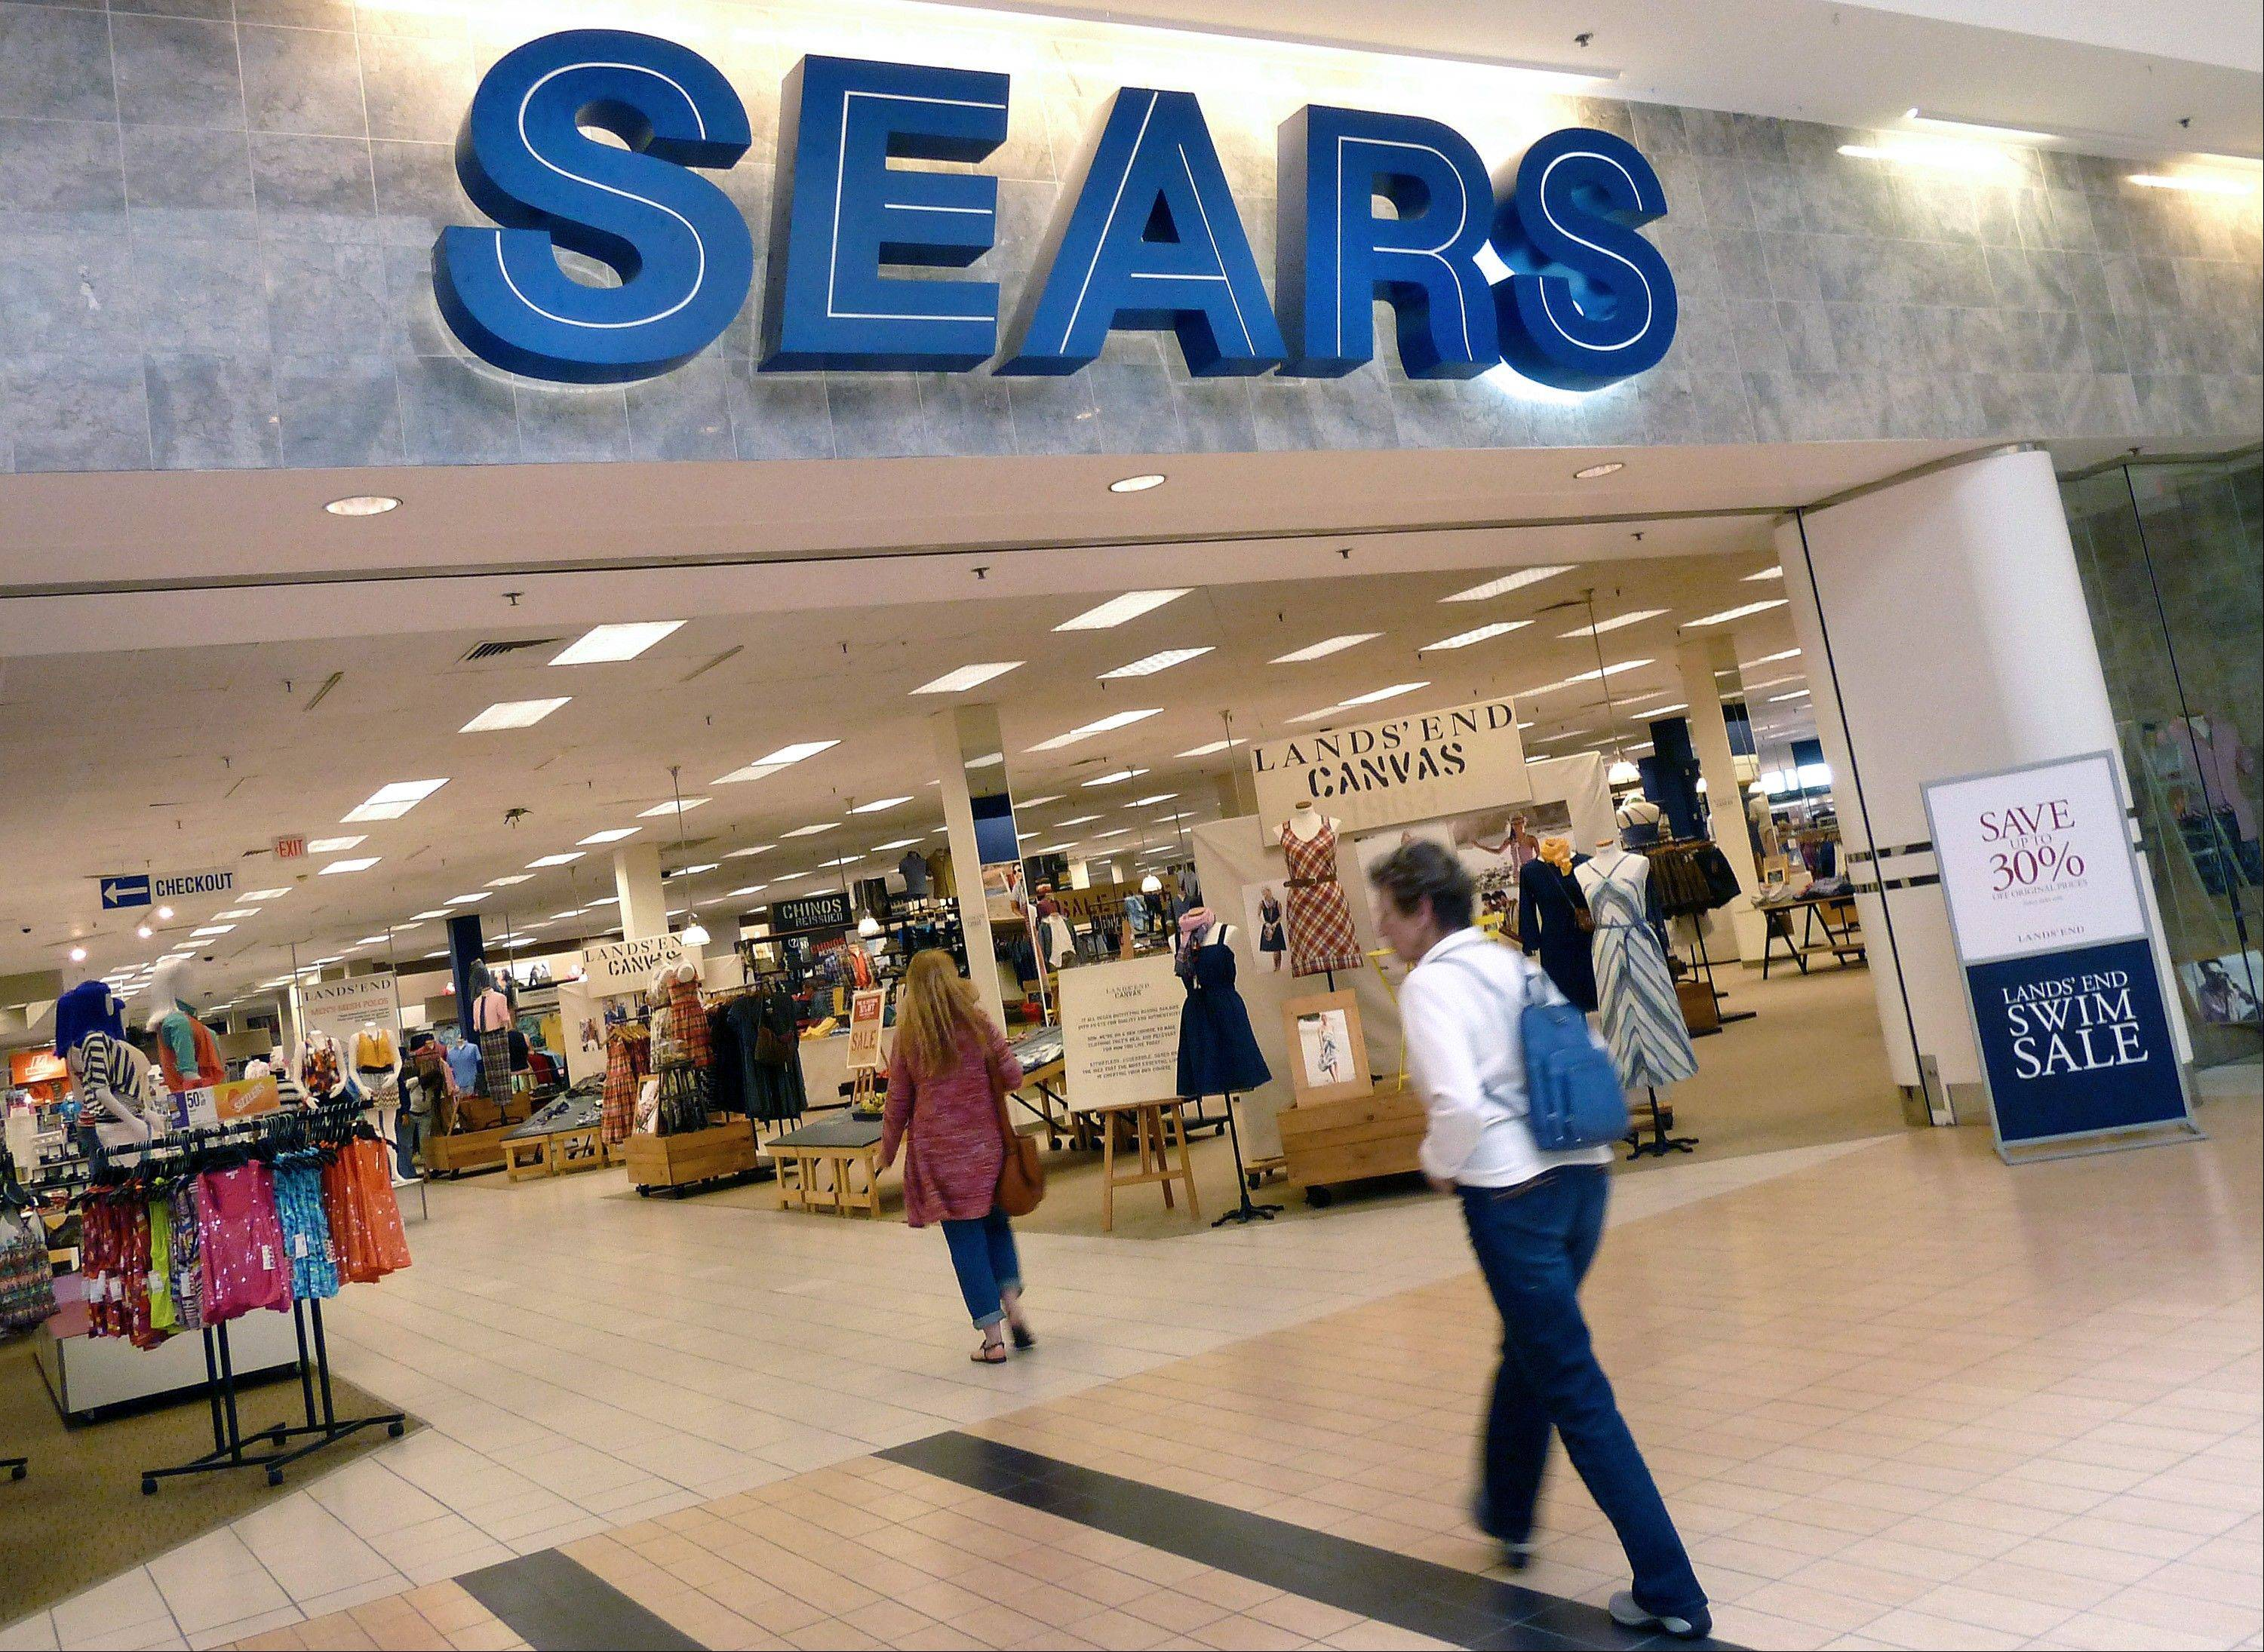 Sears is considering separating its Lands� End and Sears Auto Center businesses from the rest of the company. The retailer also plans to continue closing some unprofitable stores as it moves forward on its turnaround efforts, the company announced Tuesday.